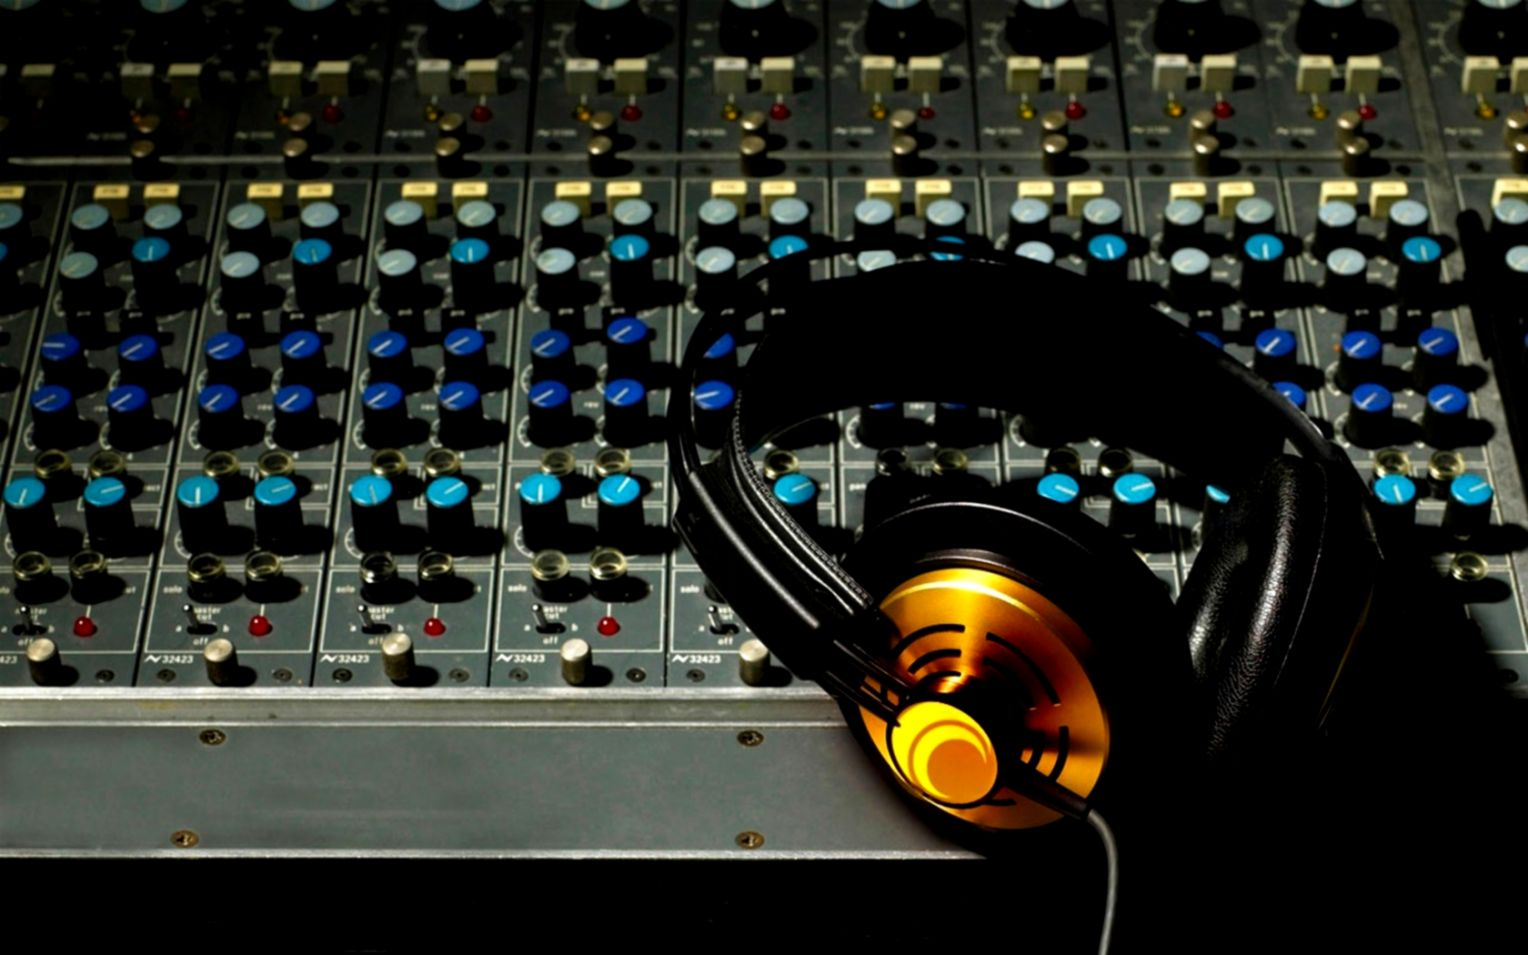 Music Studio Background Wallpaper Cool With Image Of Music Studio 1528x955